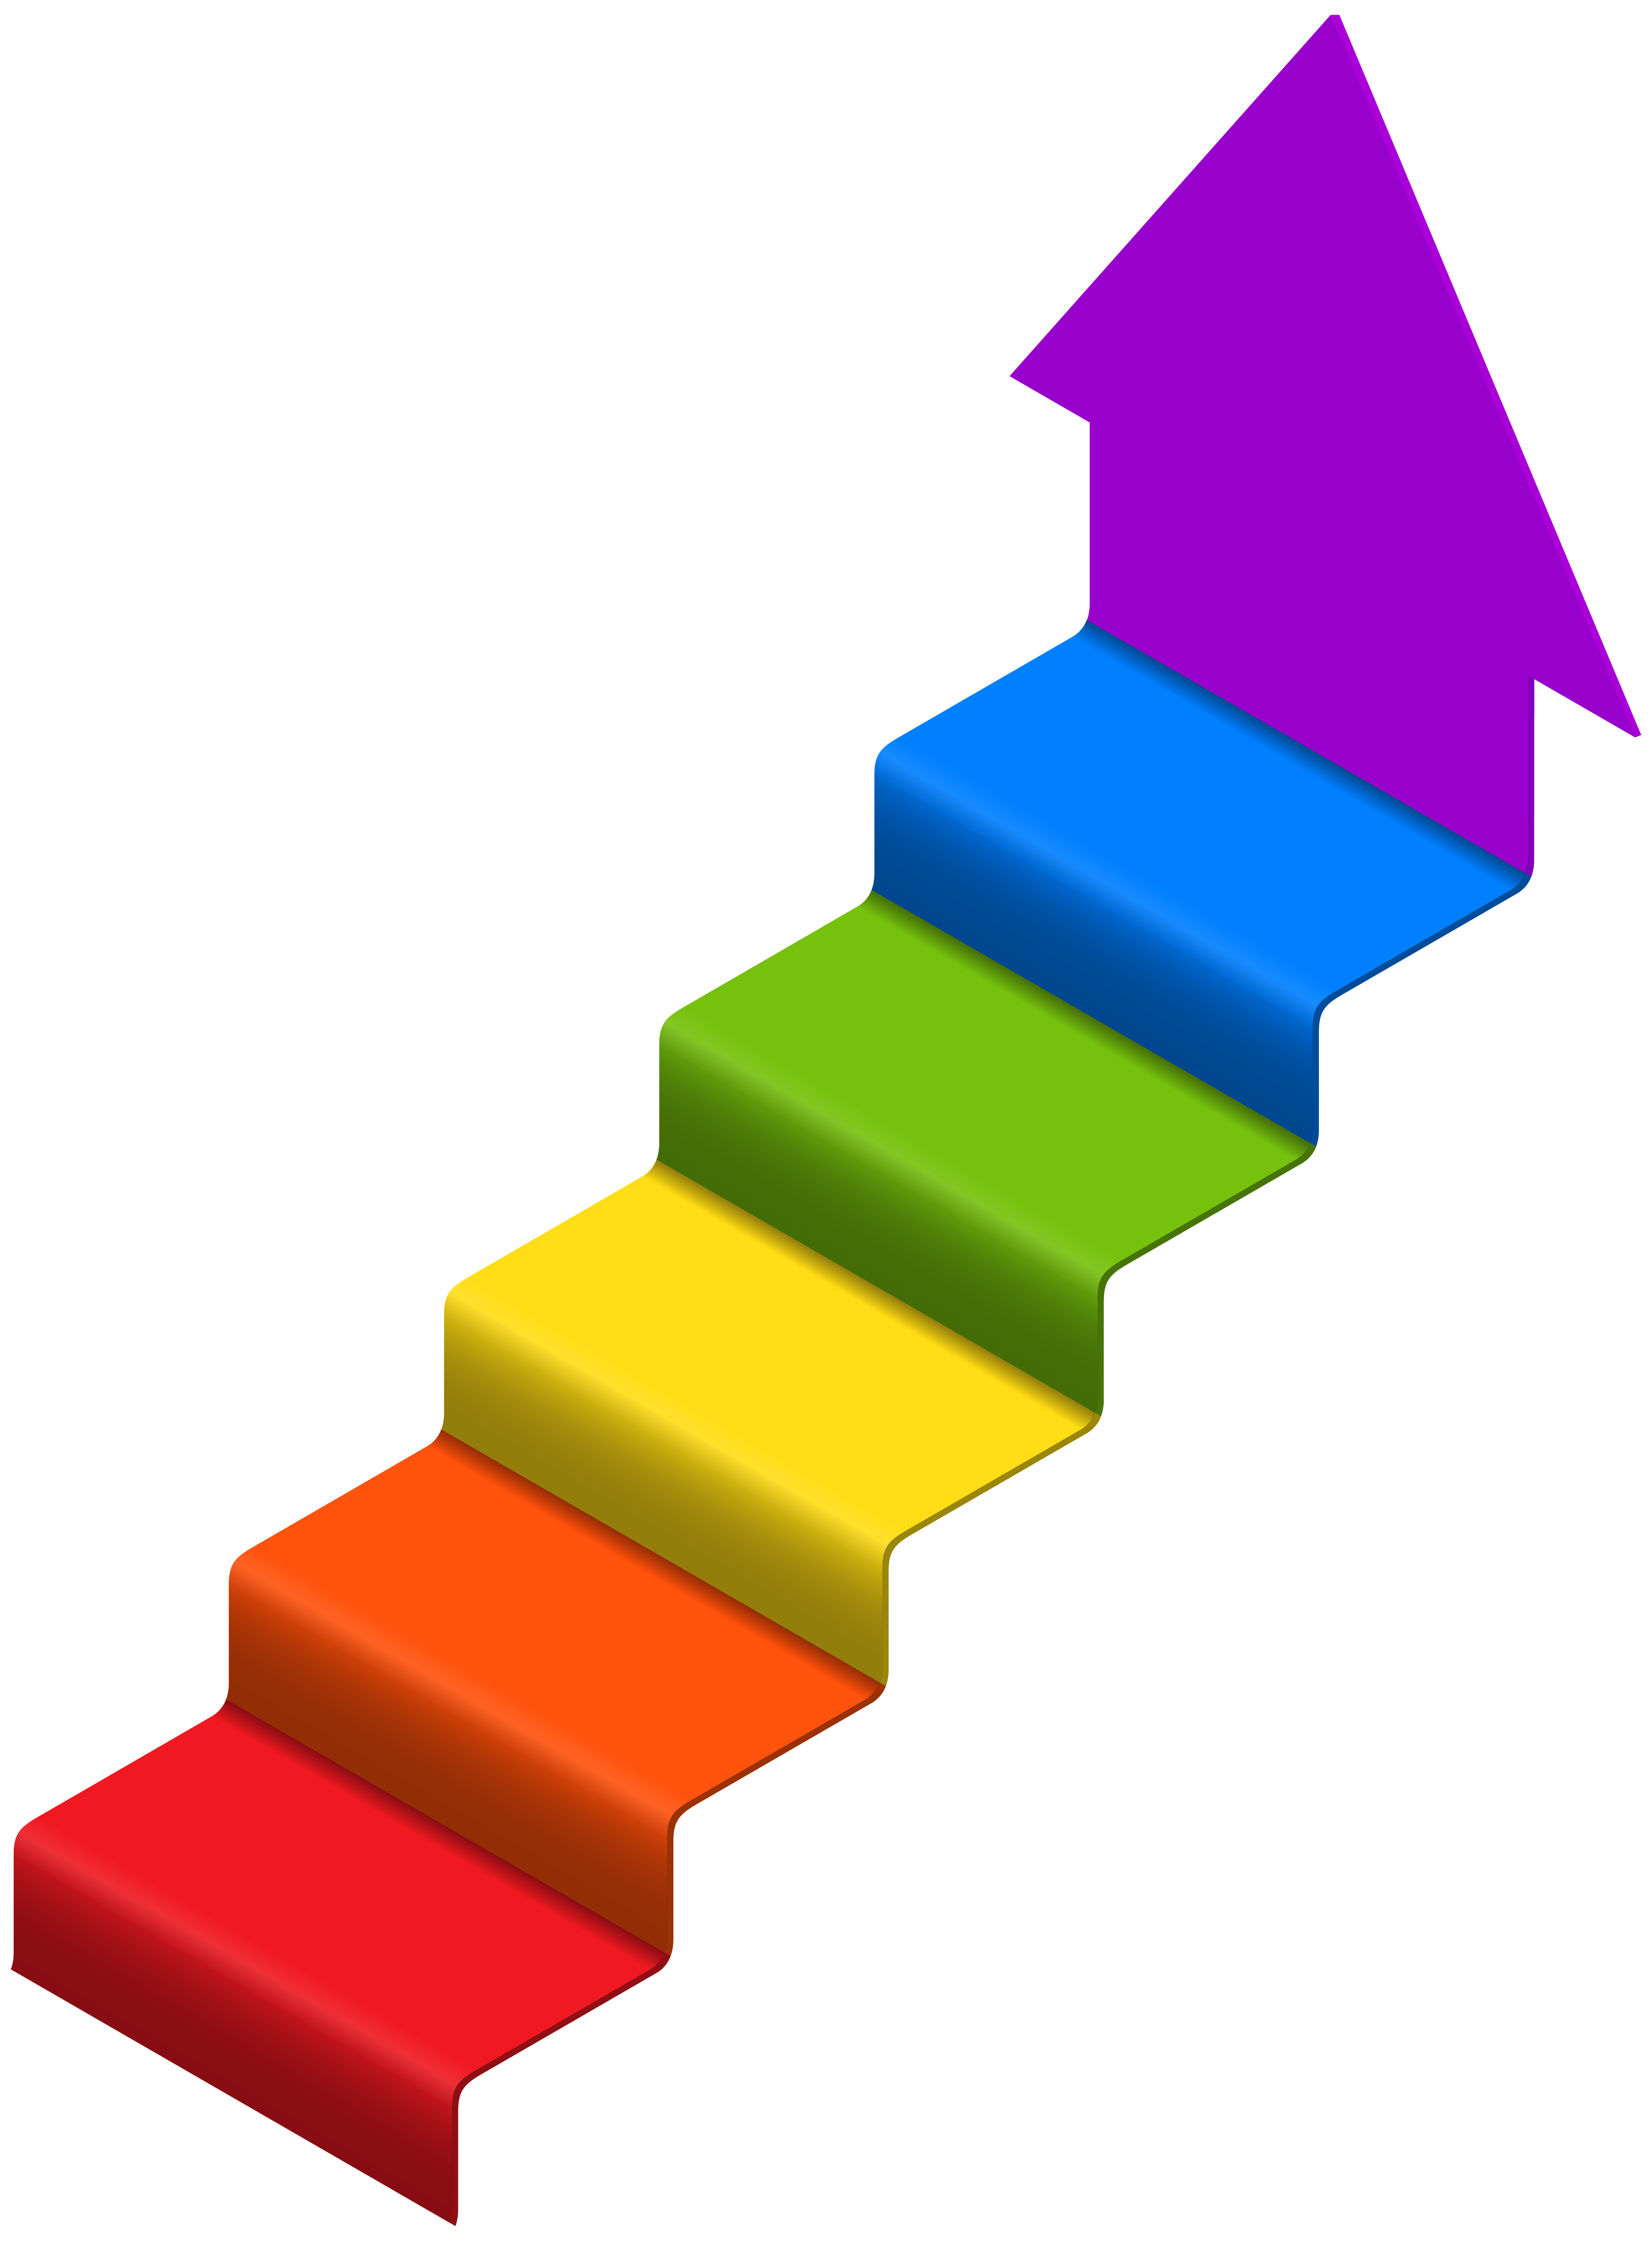 Arrow png clip art. Free clipart of stairs